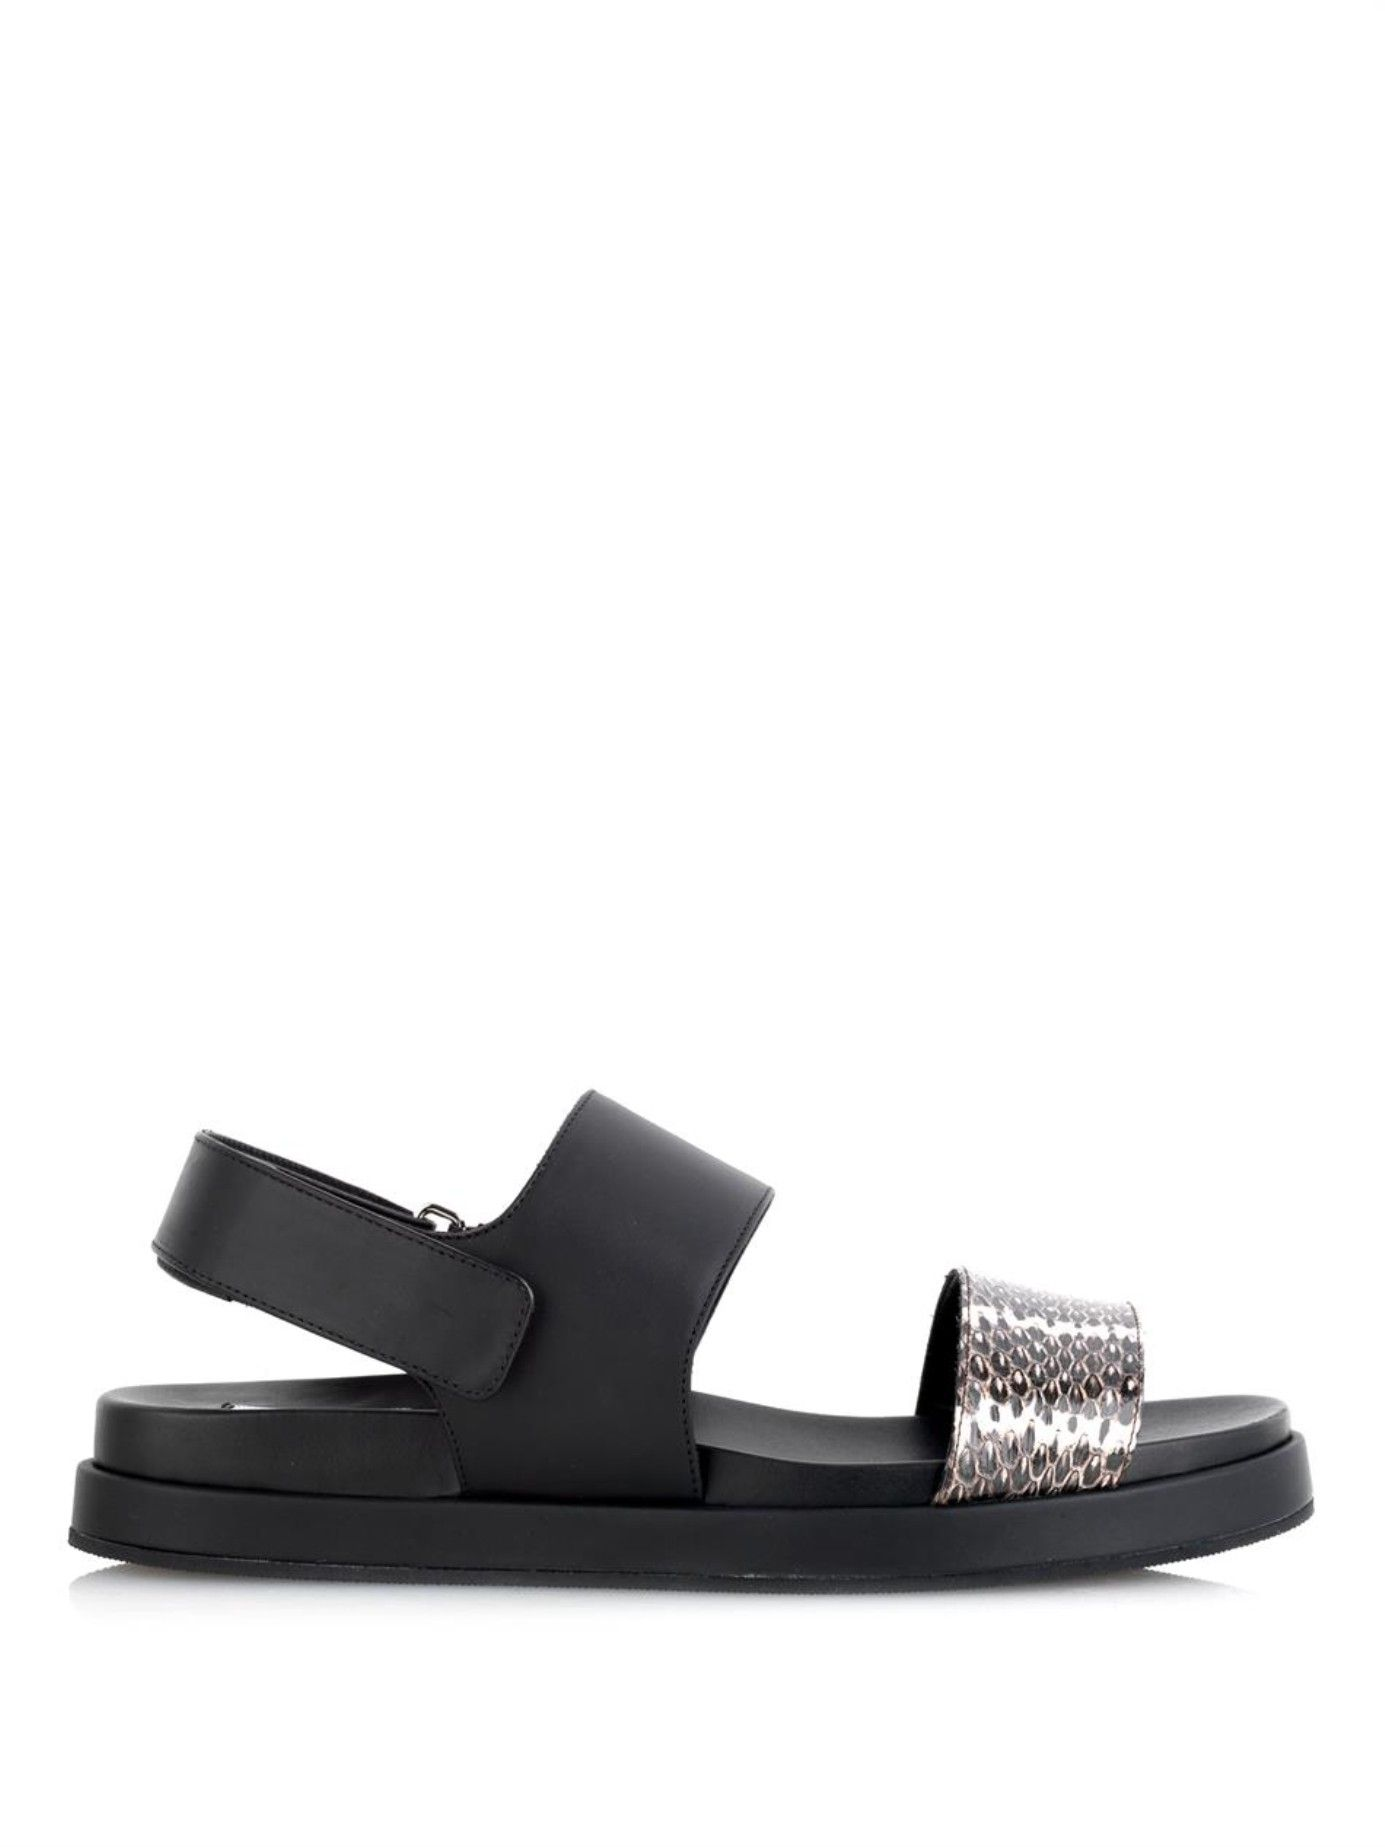 King leather and snakeskin sandals | Max Mara | MATCHESFASHION.COM US